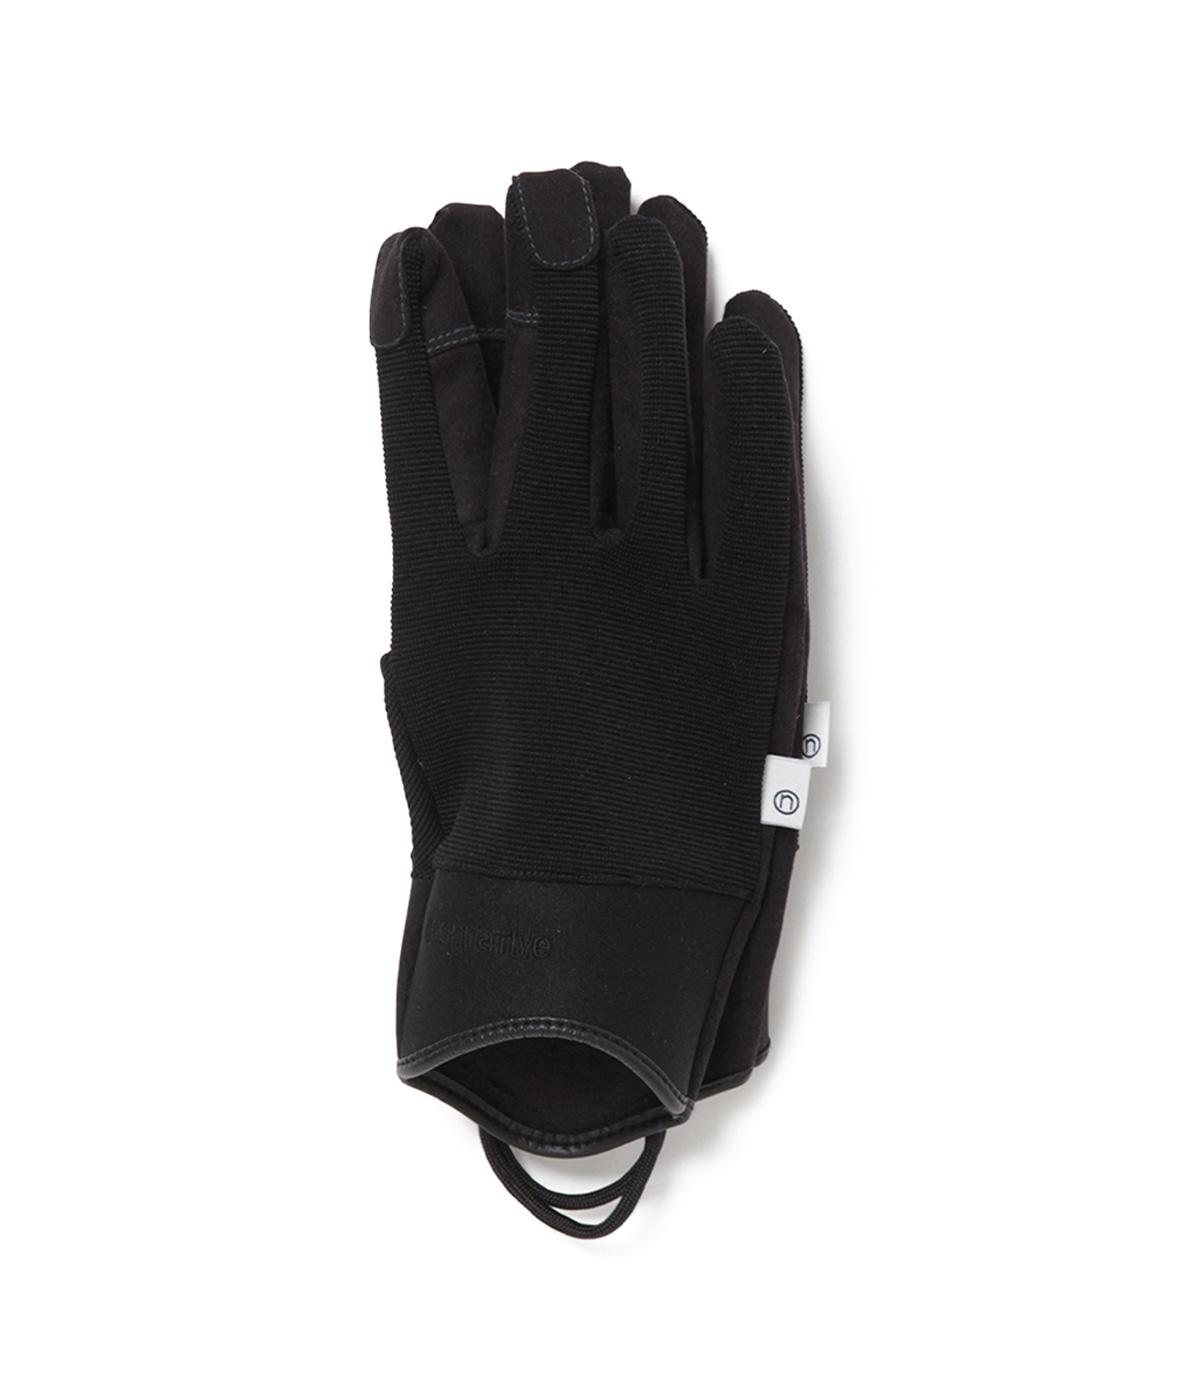 HIKER GLOVE SYNTHETIC LEATHER by GRIP SWANY